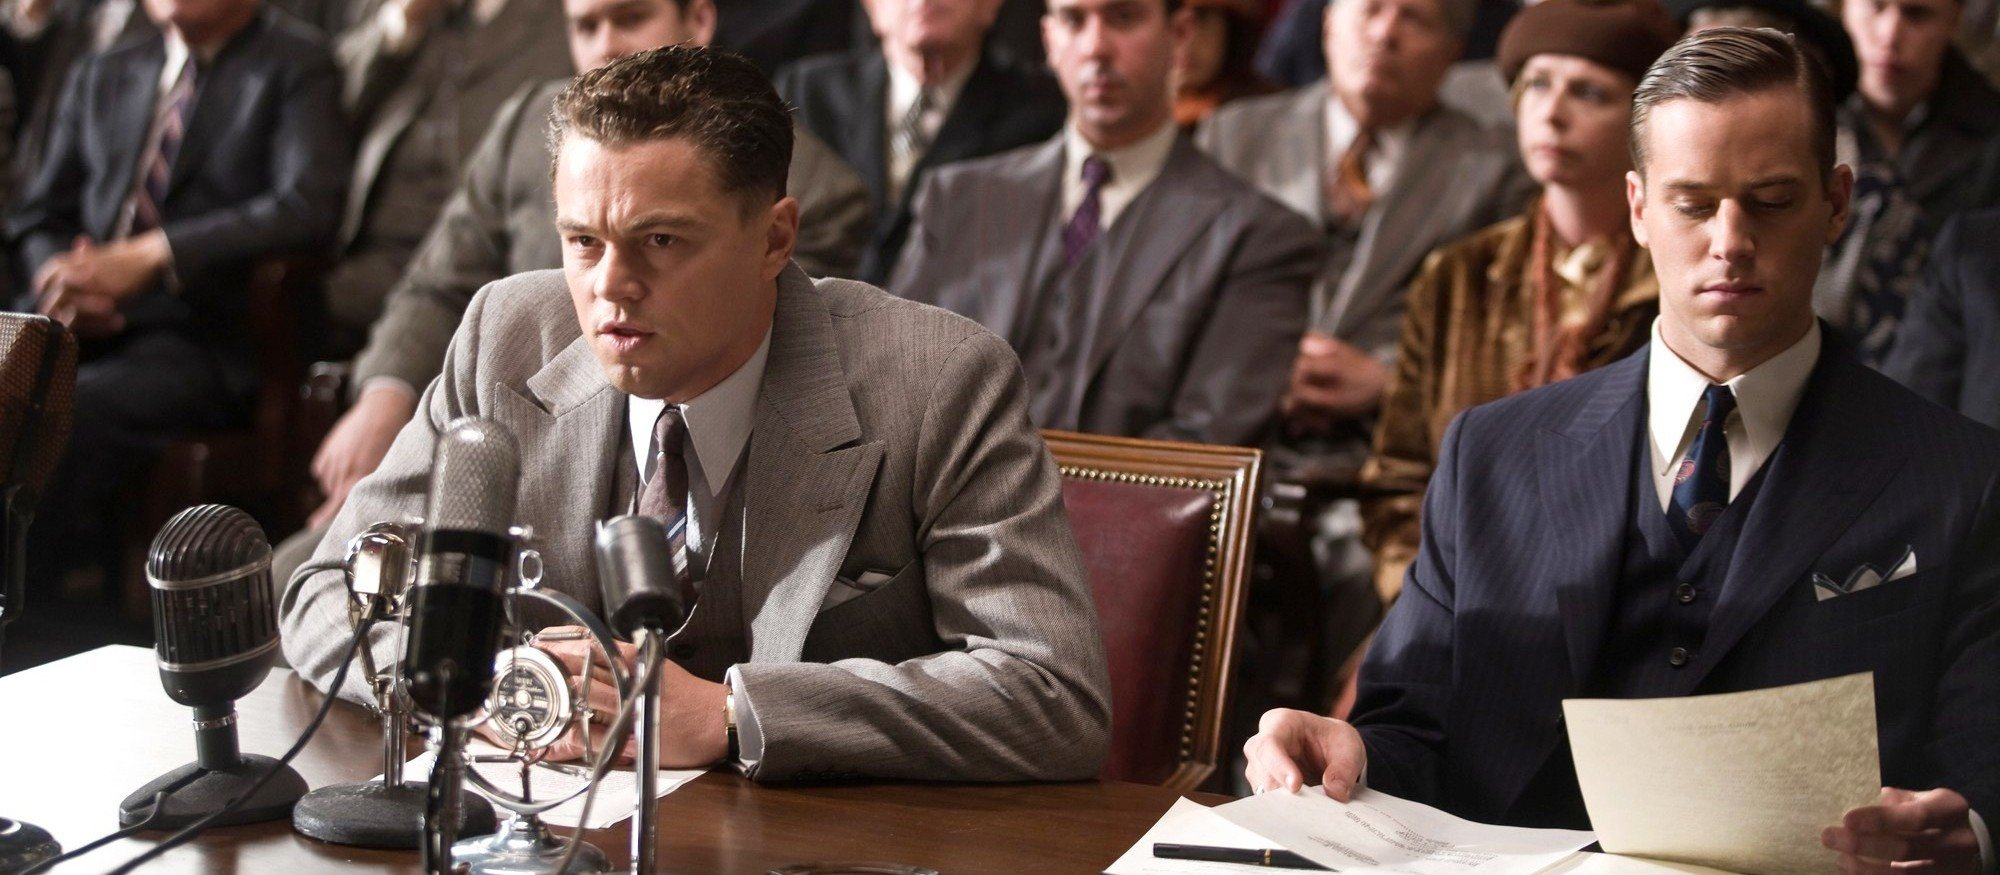 "(L-r) LEONARDO DiCAPRIO as J. Edgar Hoover and ARMIE HAMMER as Clyde Tolson in Warner Bros. Pictures' drama ""J. EDGAR,"" a Warner Bros. Pictures release."